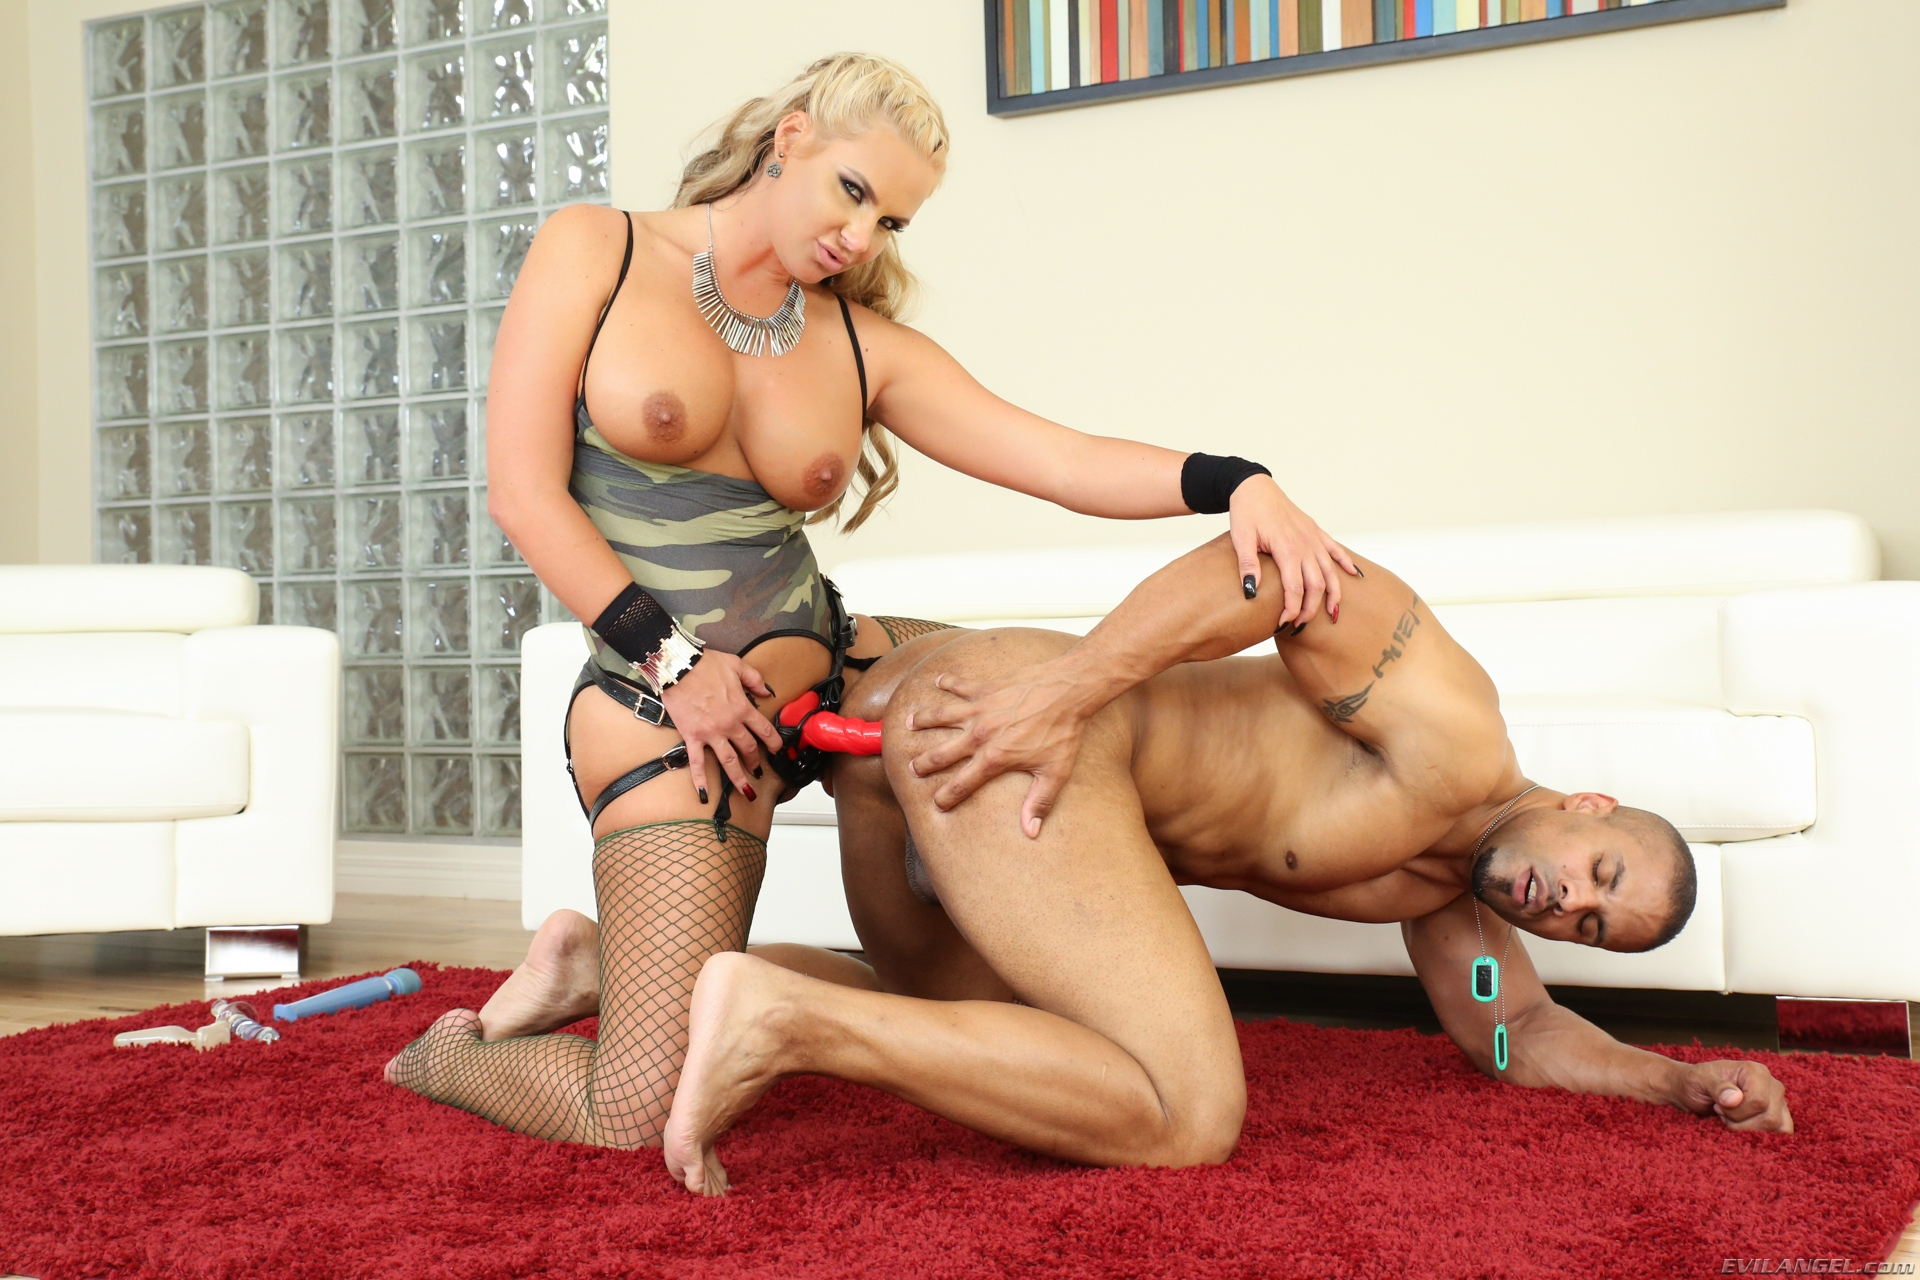 Milf strap on bondage xxx excited youthful 7